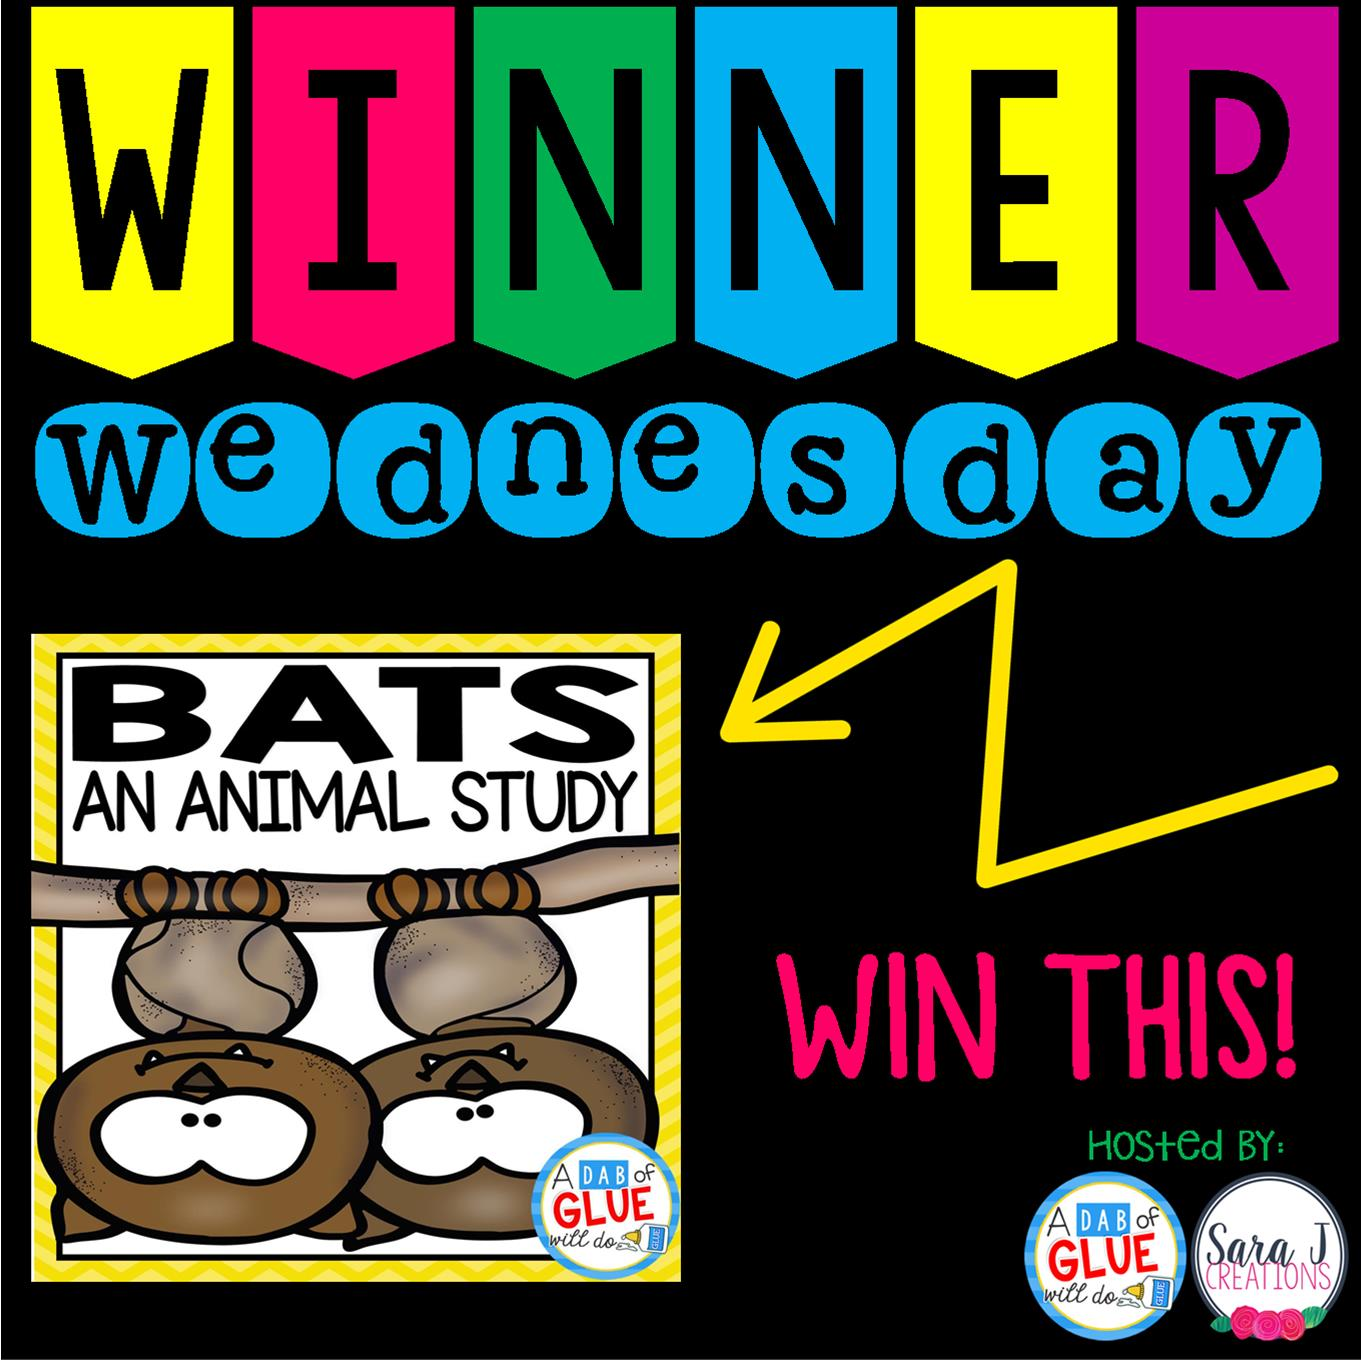 For Winner Wednesday this month I am giving away the Bats: An Animal Study. Before I go into detail about this product, I want to explain what Winner Wednesday is. This linky will take place the first Wednesday of every month. A popular product will be featured from my store including detailed explanation with authentic pictures. All you have to do is enter your name into the Rafflecopter and YOU will have a chance to win that product for FREE!